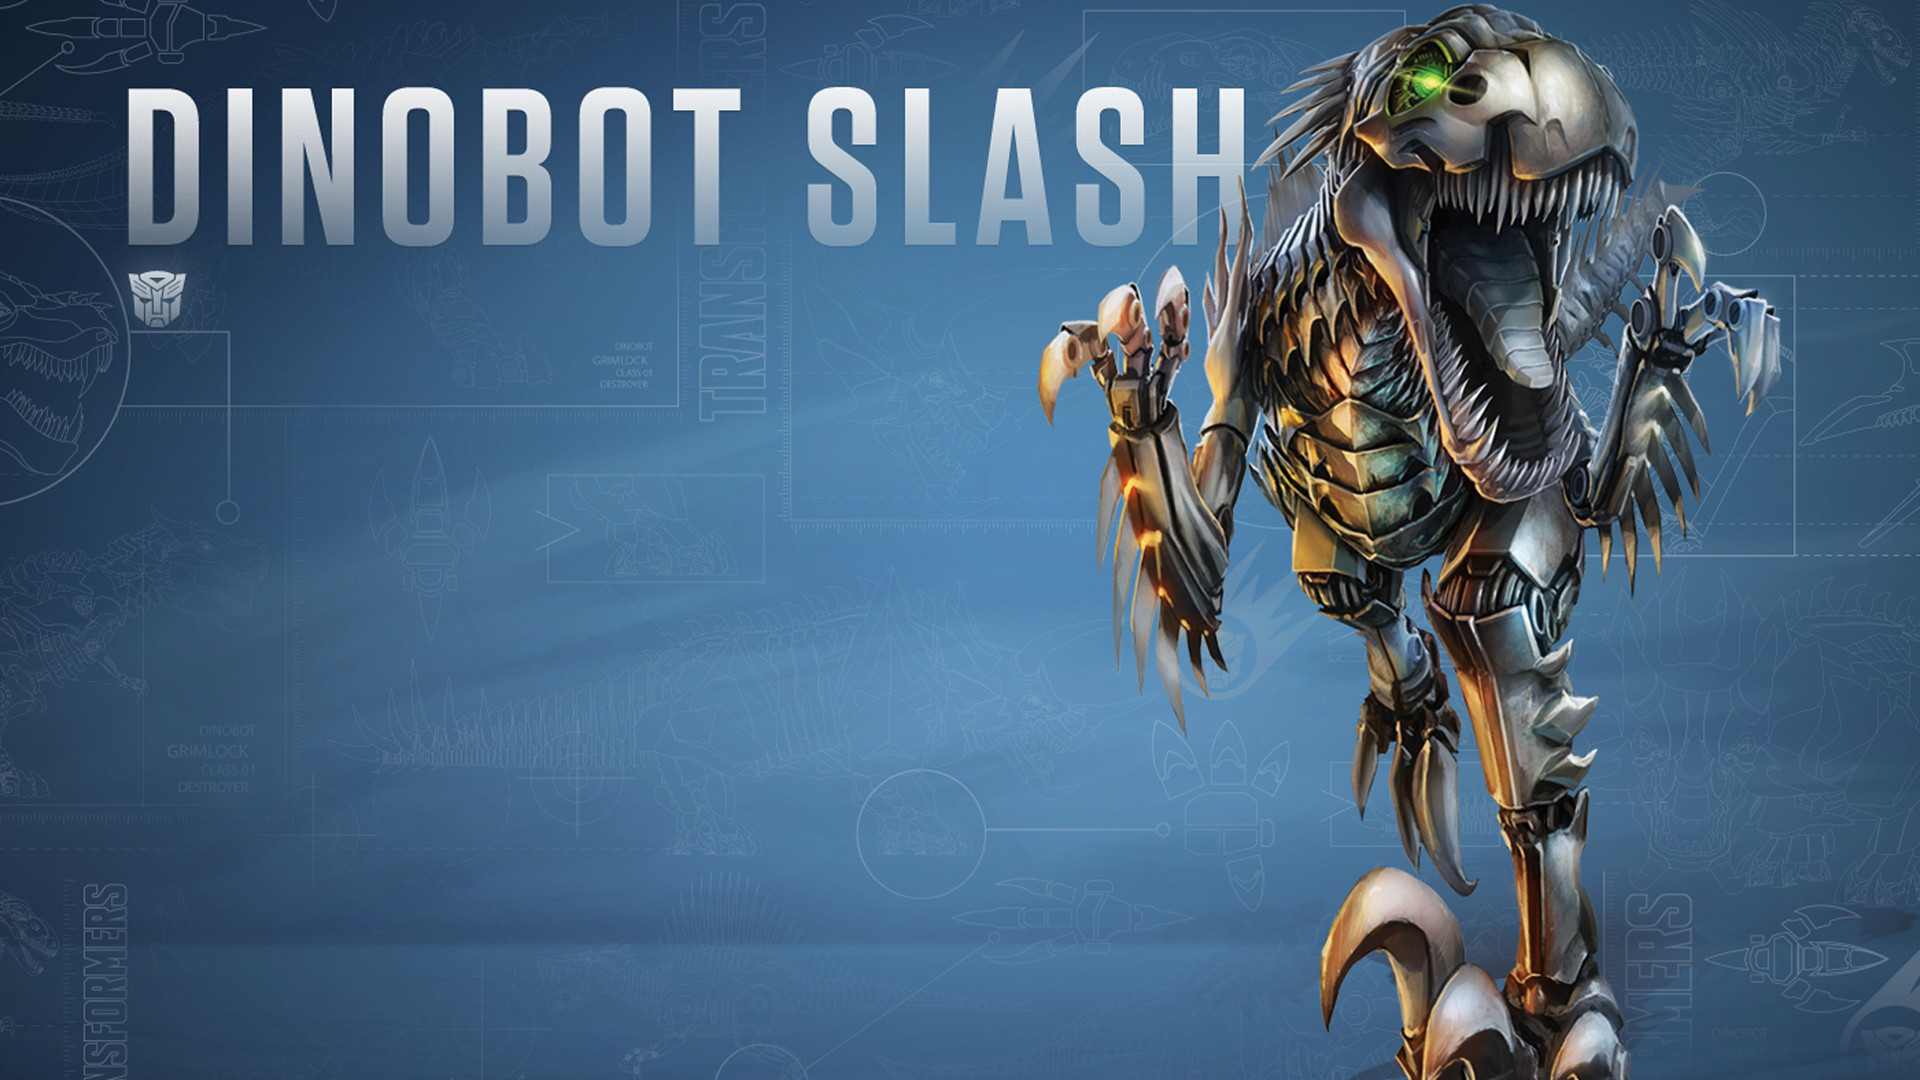 Slash Dinobot Transformers 4 Movie